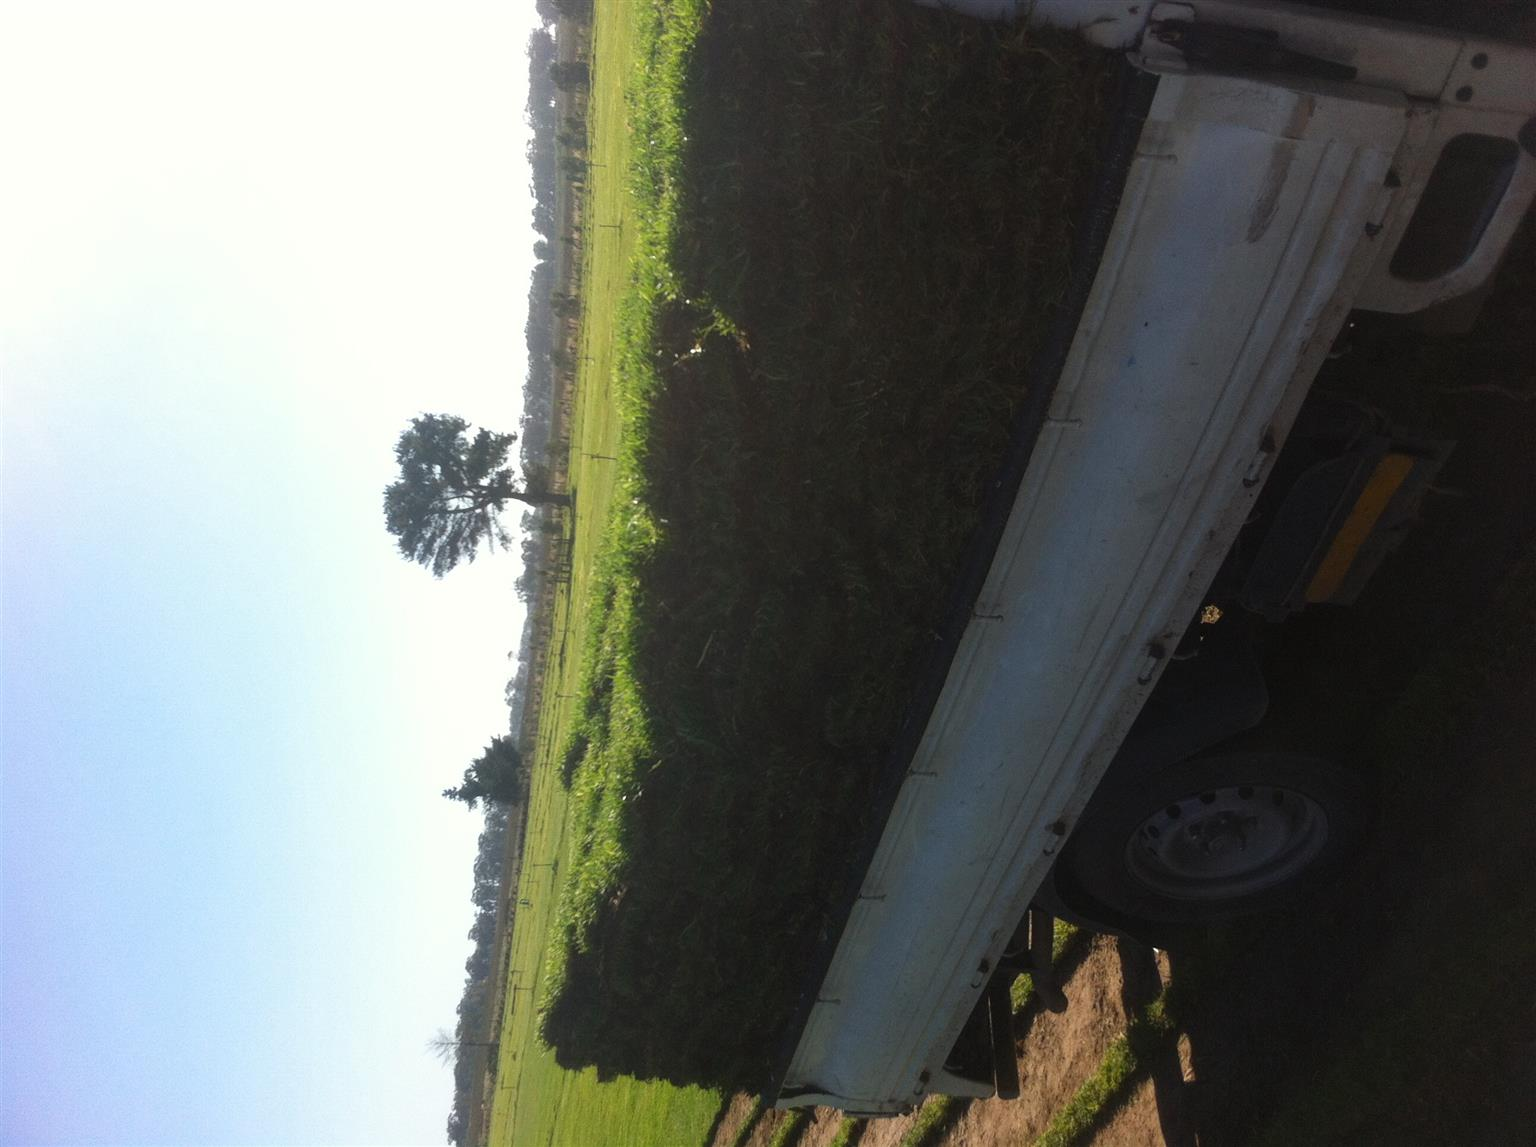 Suppliers of roll on lawn